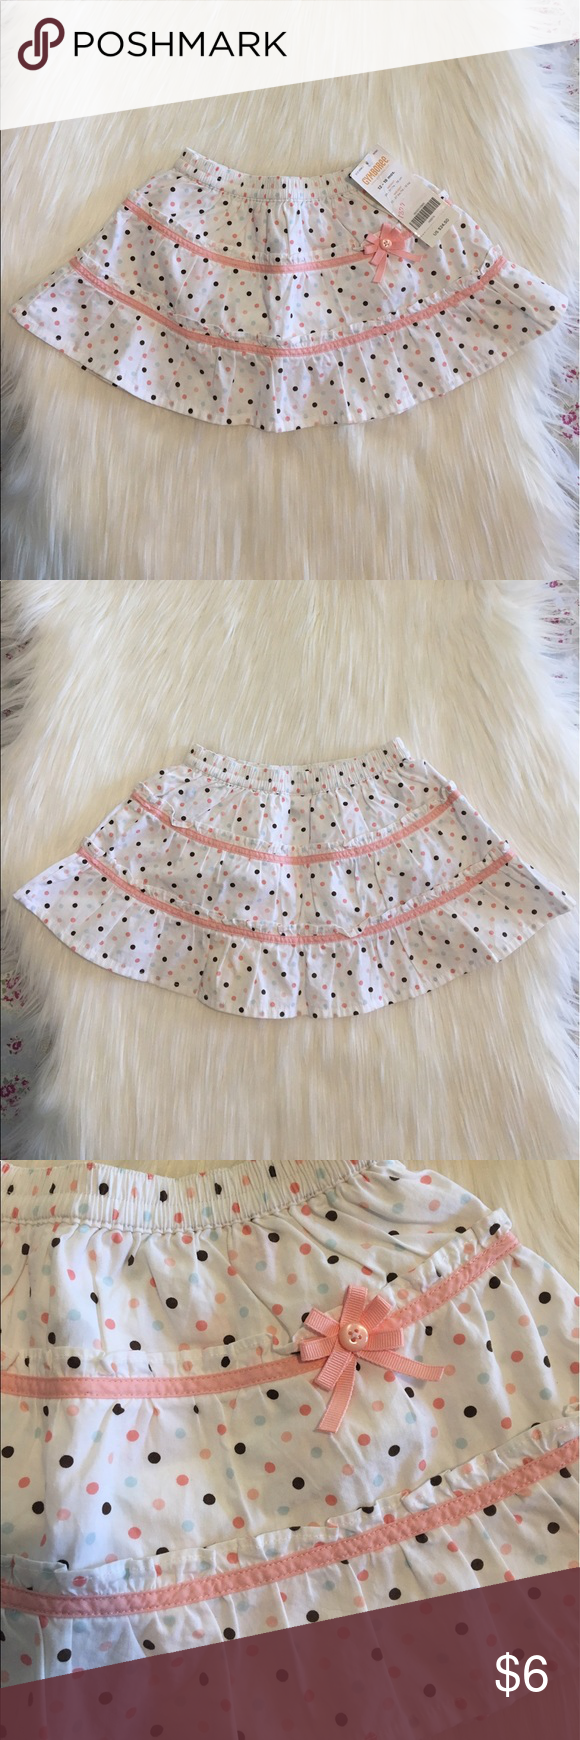 NWT Gymboree Brand Skirt! NWT Gymboree Brand Baby Skirt!                                                        • Colors: White, Brown, Light Pink, & Baby Blue!                      • Brand: Gymboree!                                                                   • Size: 12-18 mos.!                                                                      • Happy to answer any ?'s!                                                          • Offers welcome! Gymboree Bottoms Skirts